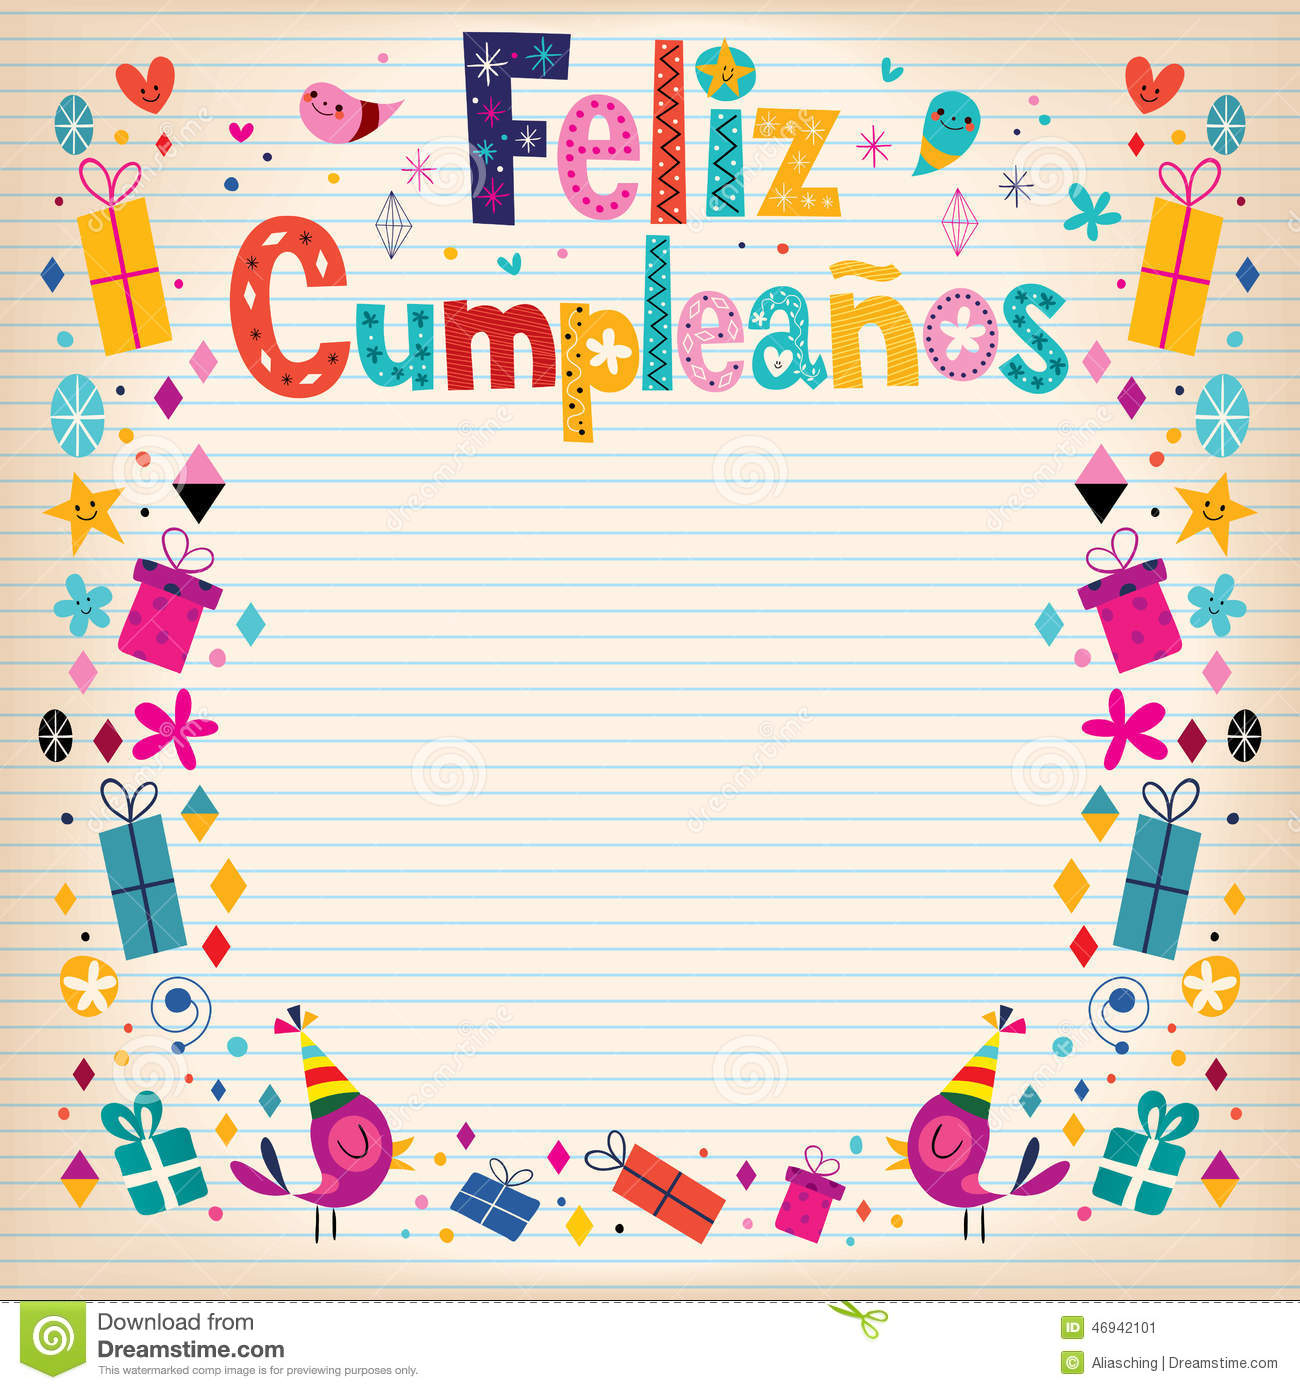 feliz cumpleanos  happy birthday in spanish border lined paper, Birthday card